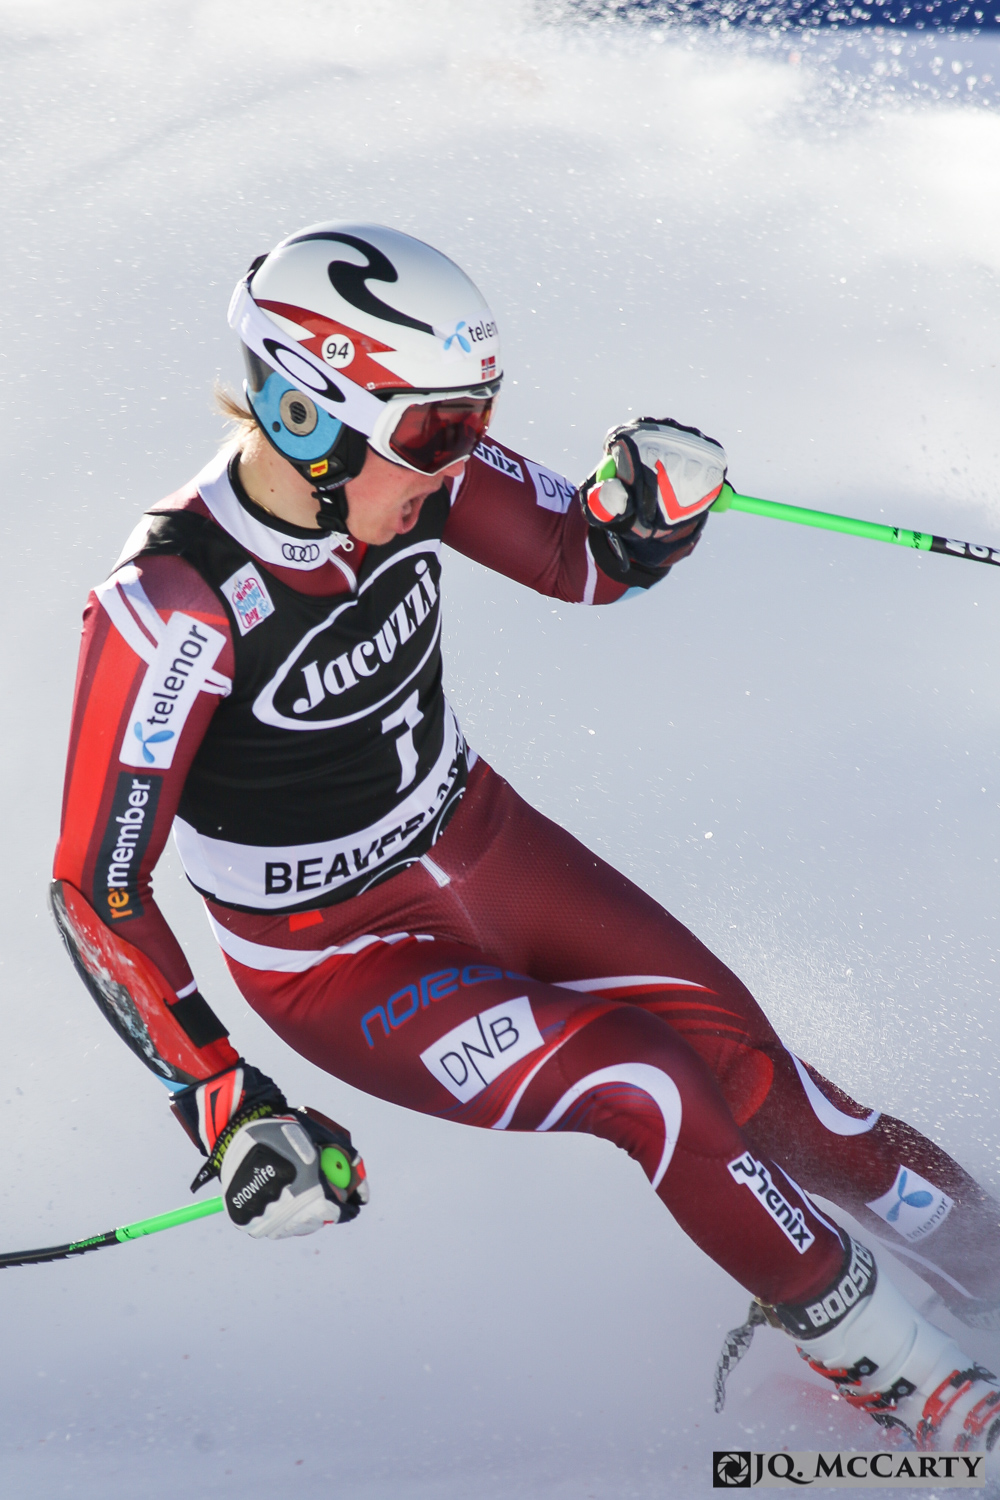 Norwegian Henrik Kristoffersen celebrates after completing his second run putting him on the podium in the Birds of Prey World Cup giaint slalom race Sunday in Beaver Creek. Kristoffersen fininshed in third place with a combined two run time of 2 minutes, 33.89.